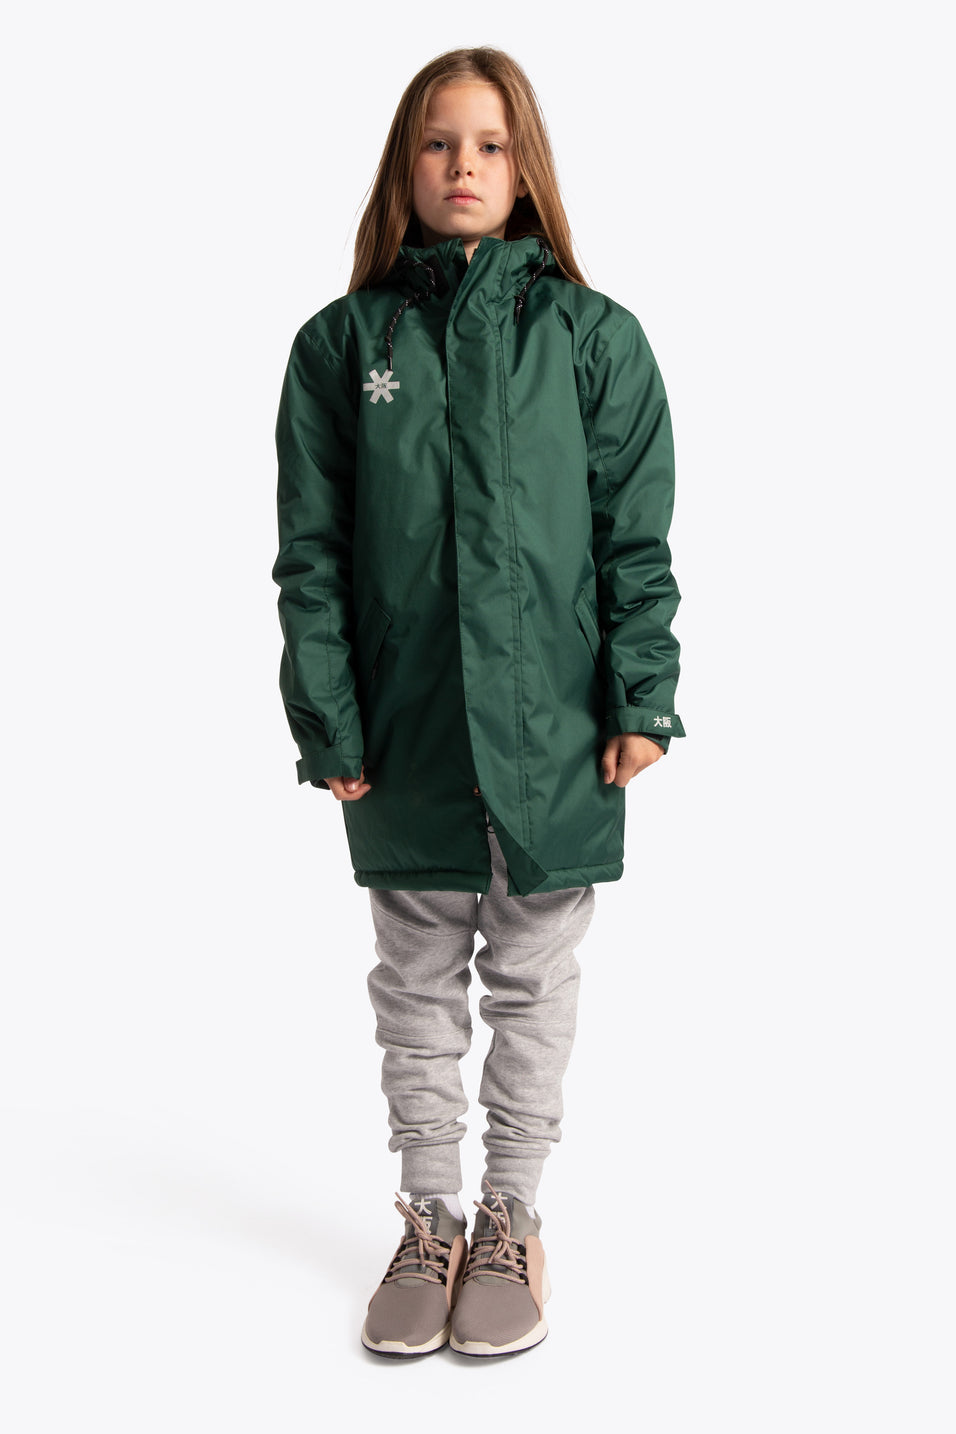 Deshi Stadium Jacket - Dark Green